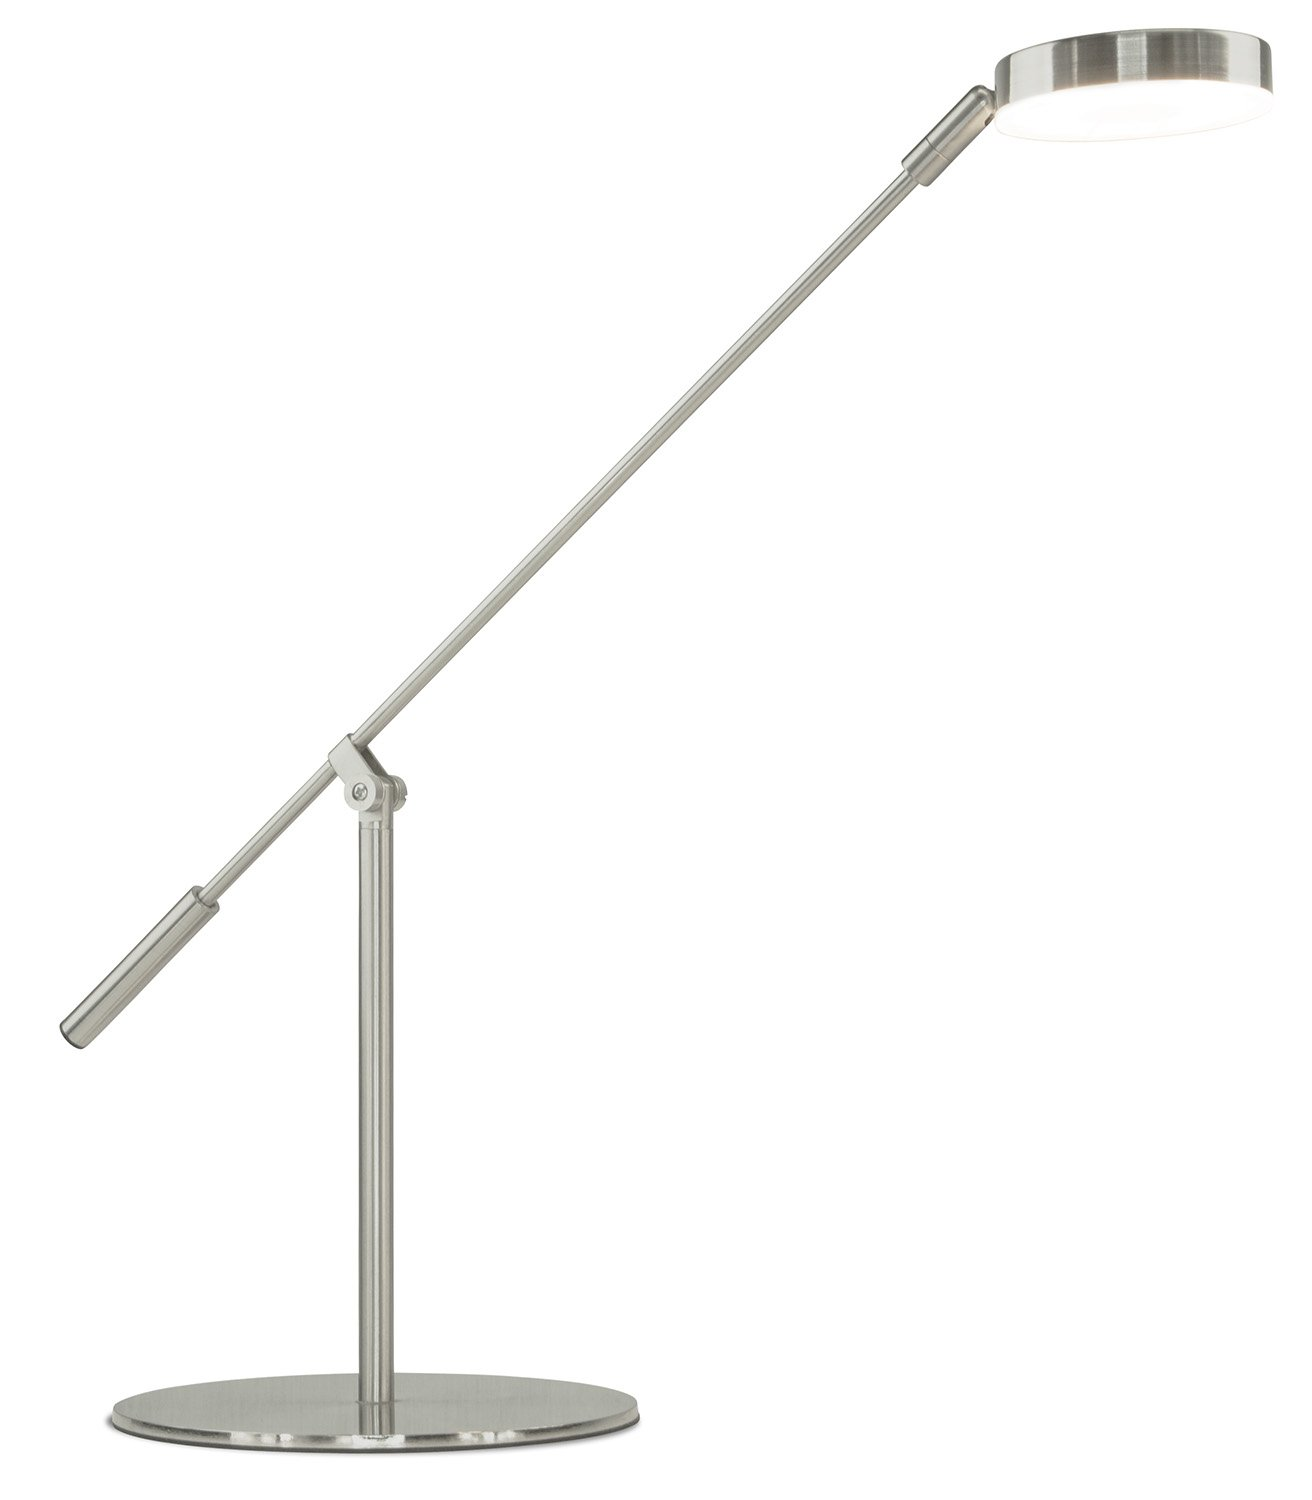 Turcom LED Desk Lamp, Energy-Efficient, Non-Flickering for Reading, Adjustable Neck, Touch-Sensitive Control Panel, 450 Lumen,Silver by Turcom (Image #1)